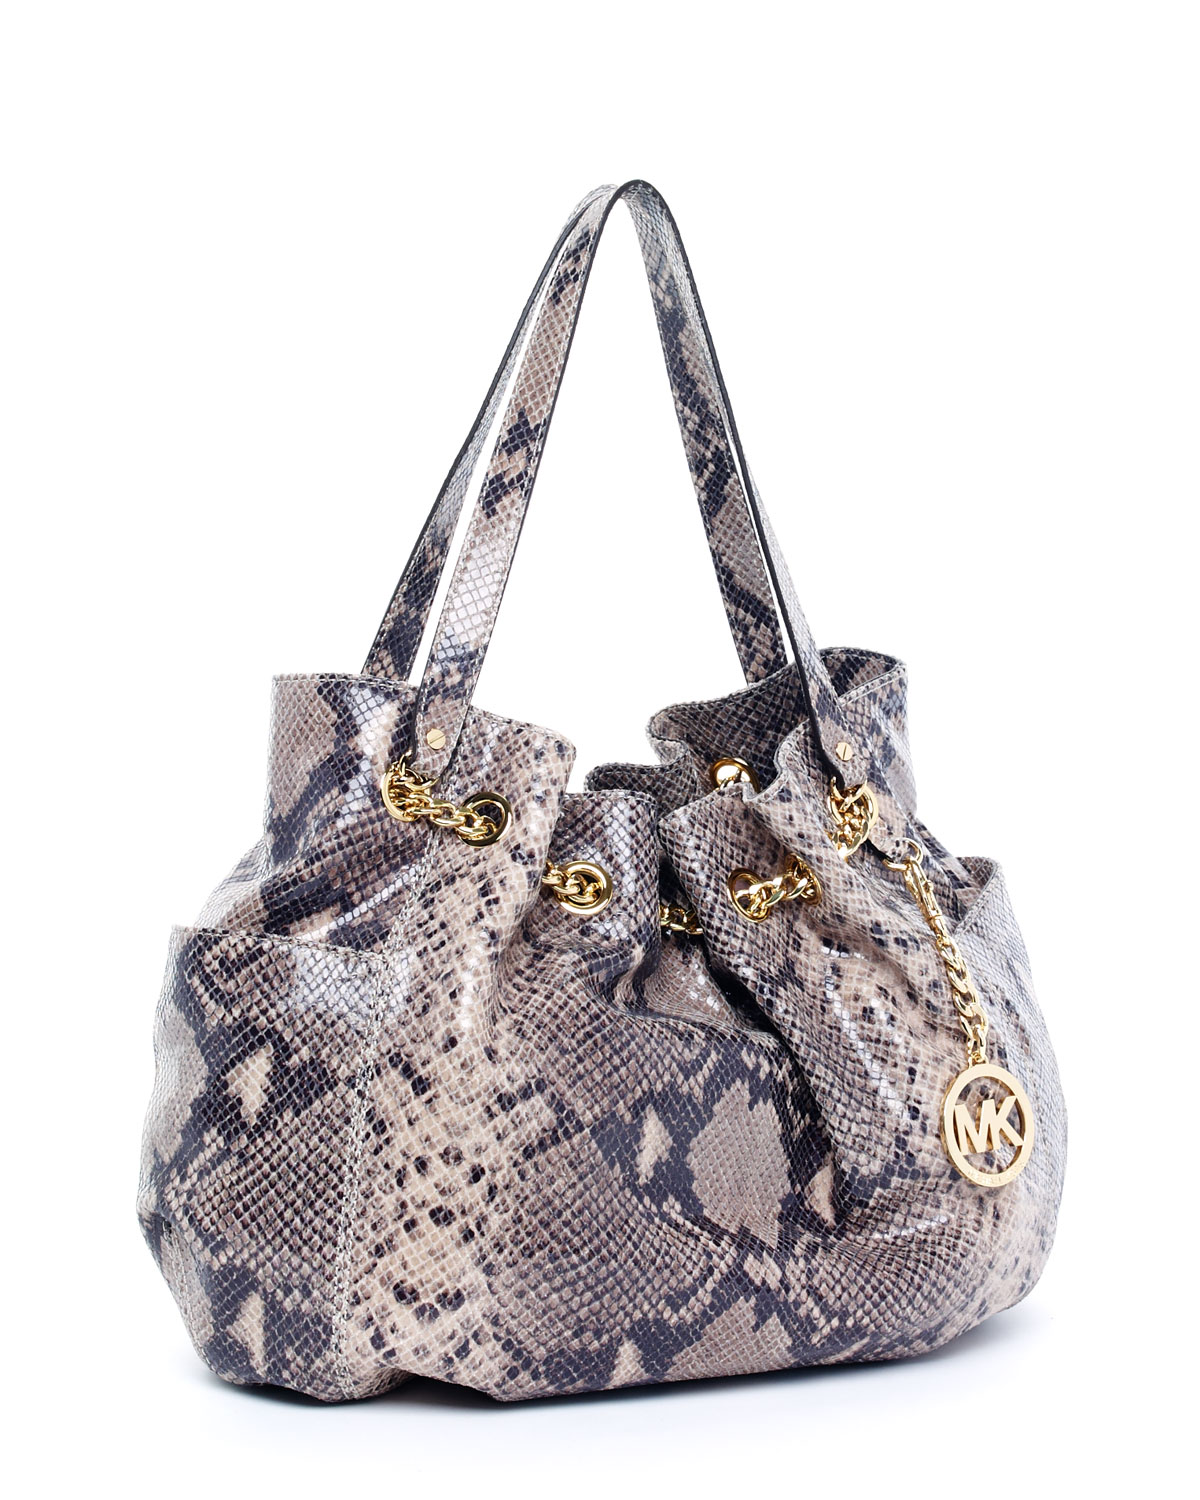 0a36a99fdea3a Michael Kors Jet Set Python-embossed Chain Ring Tote